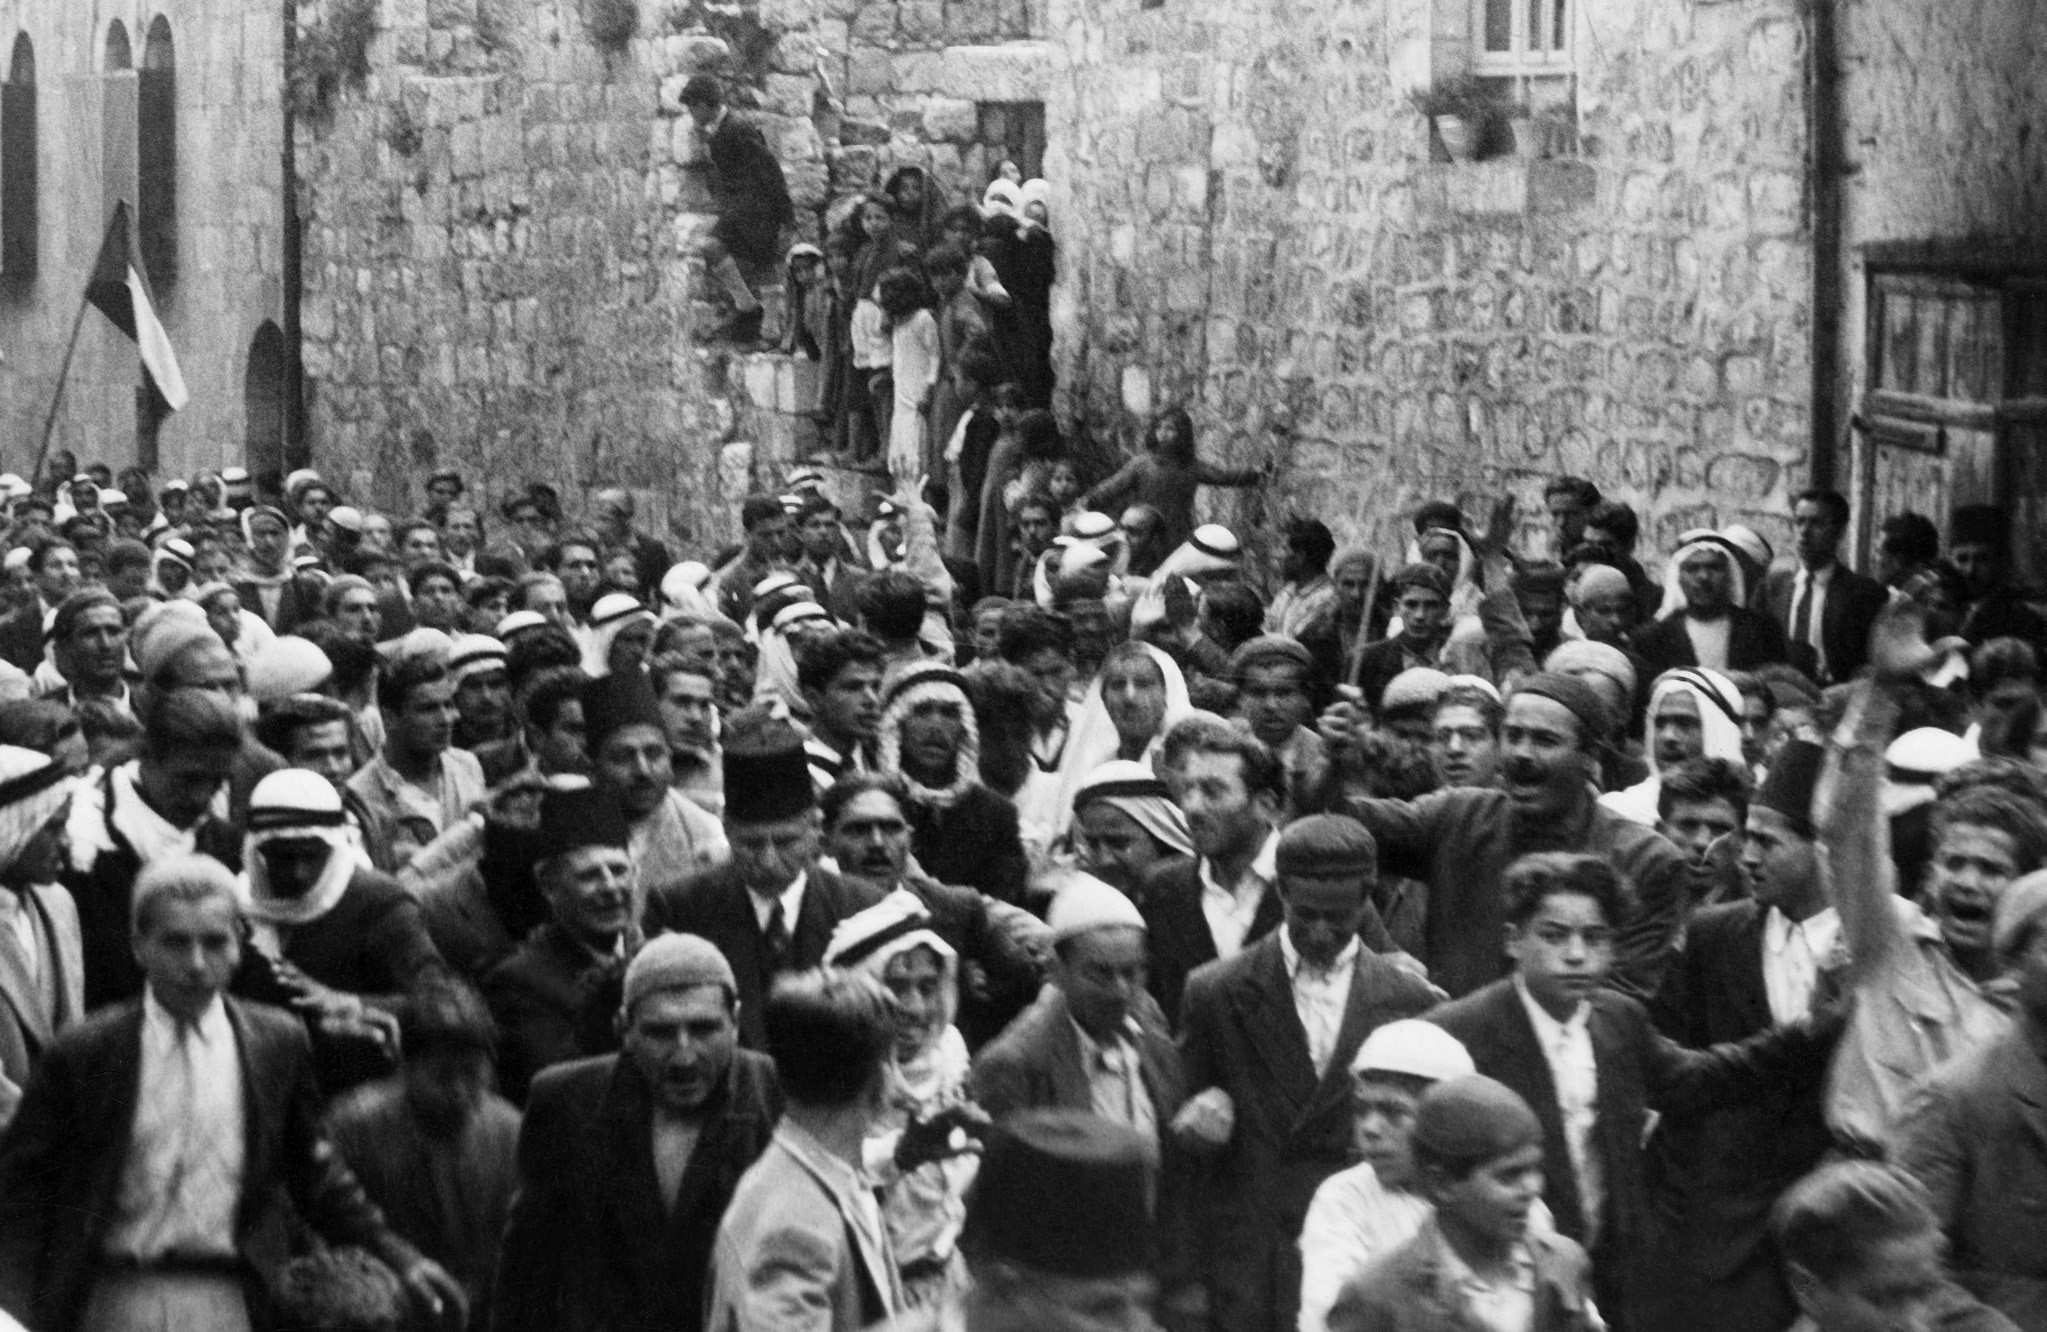 A picture dated before 1937 during the British Mandate in Palestine shows Arabs demonstrating in the Old City of Jerusalem against the Jewish immigration to Palestine.